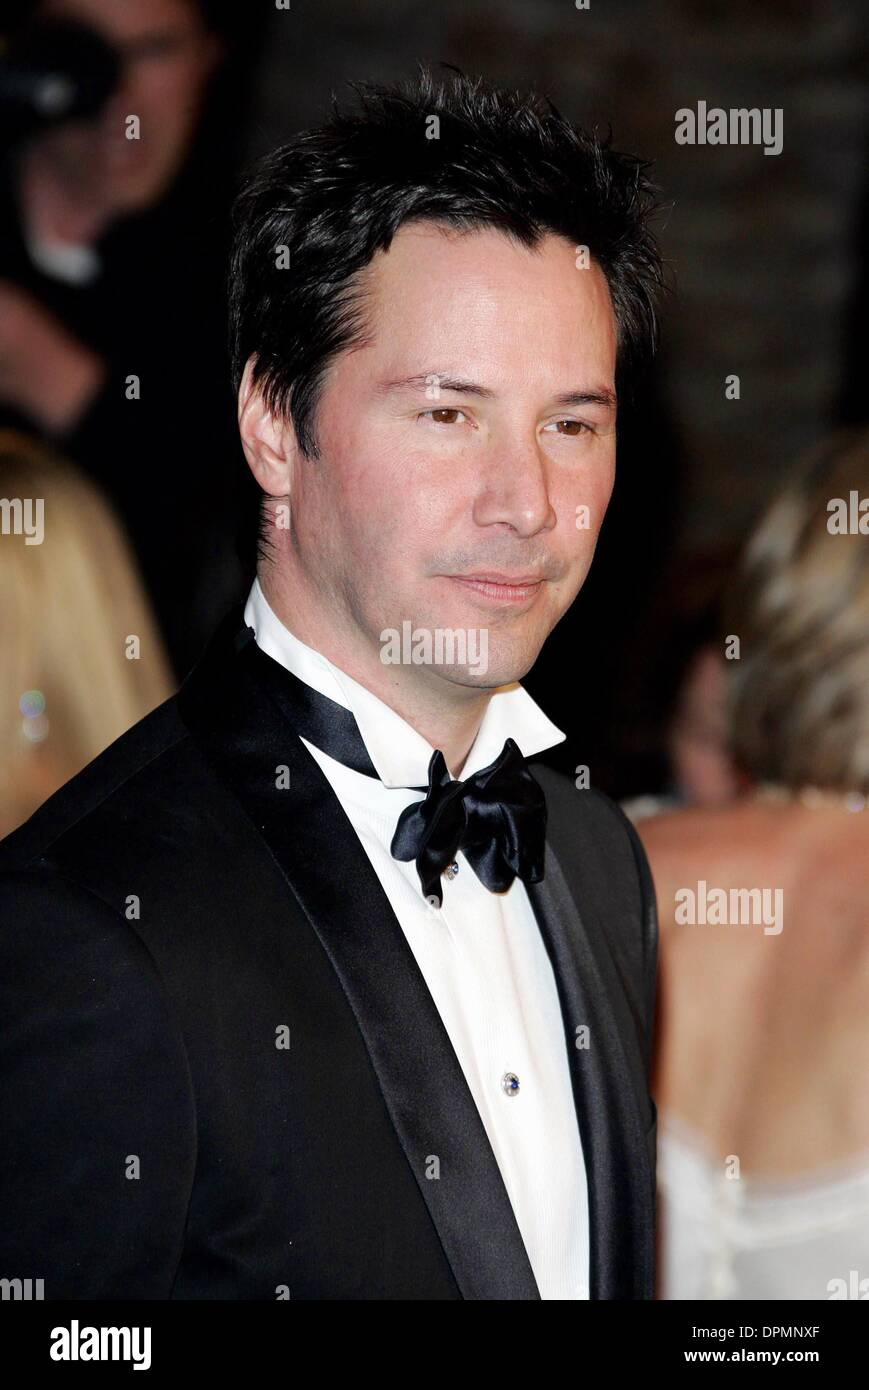 Keanu Reeves Actor High Resolution Stock Photography And Images Alamy